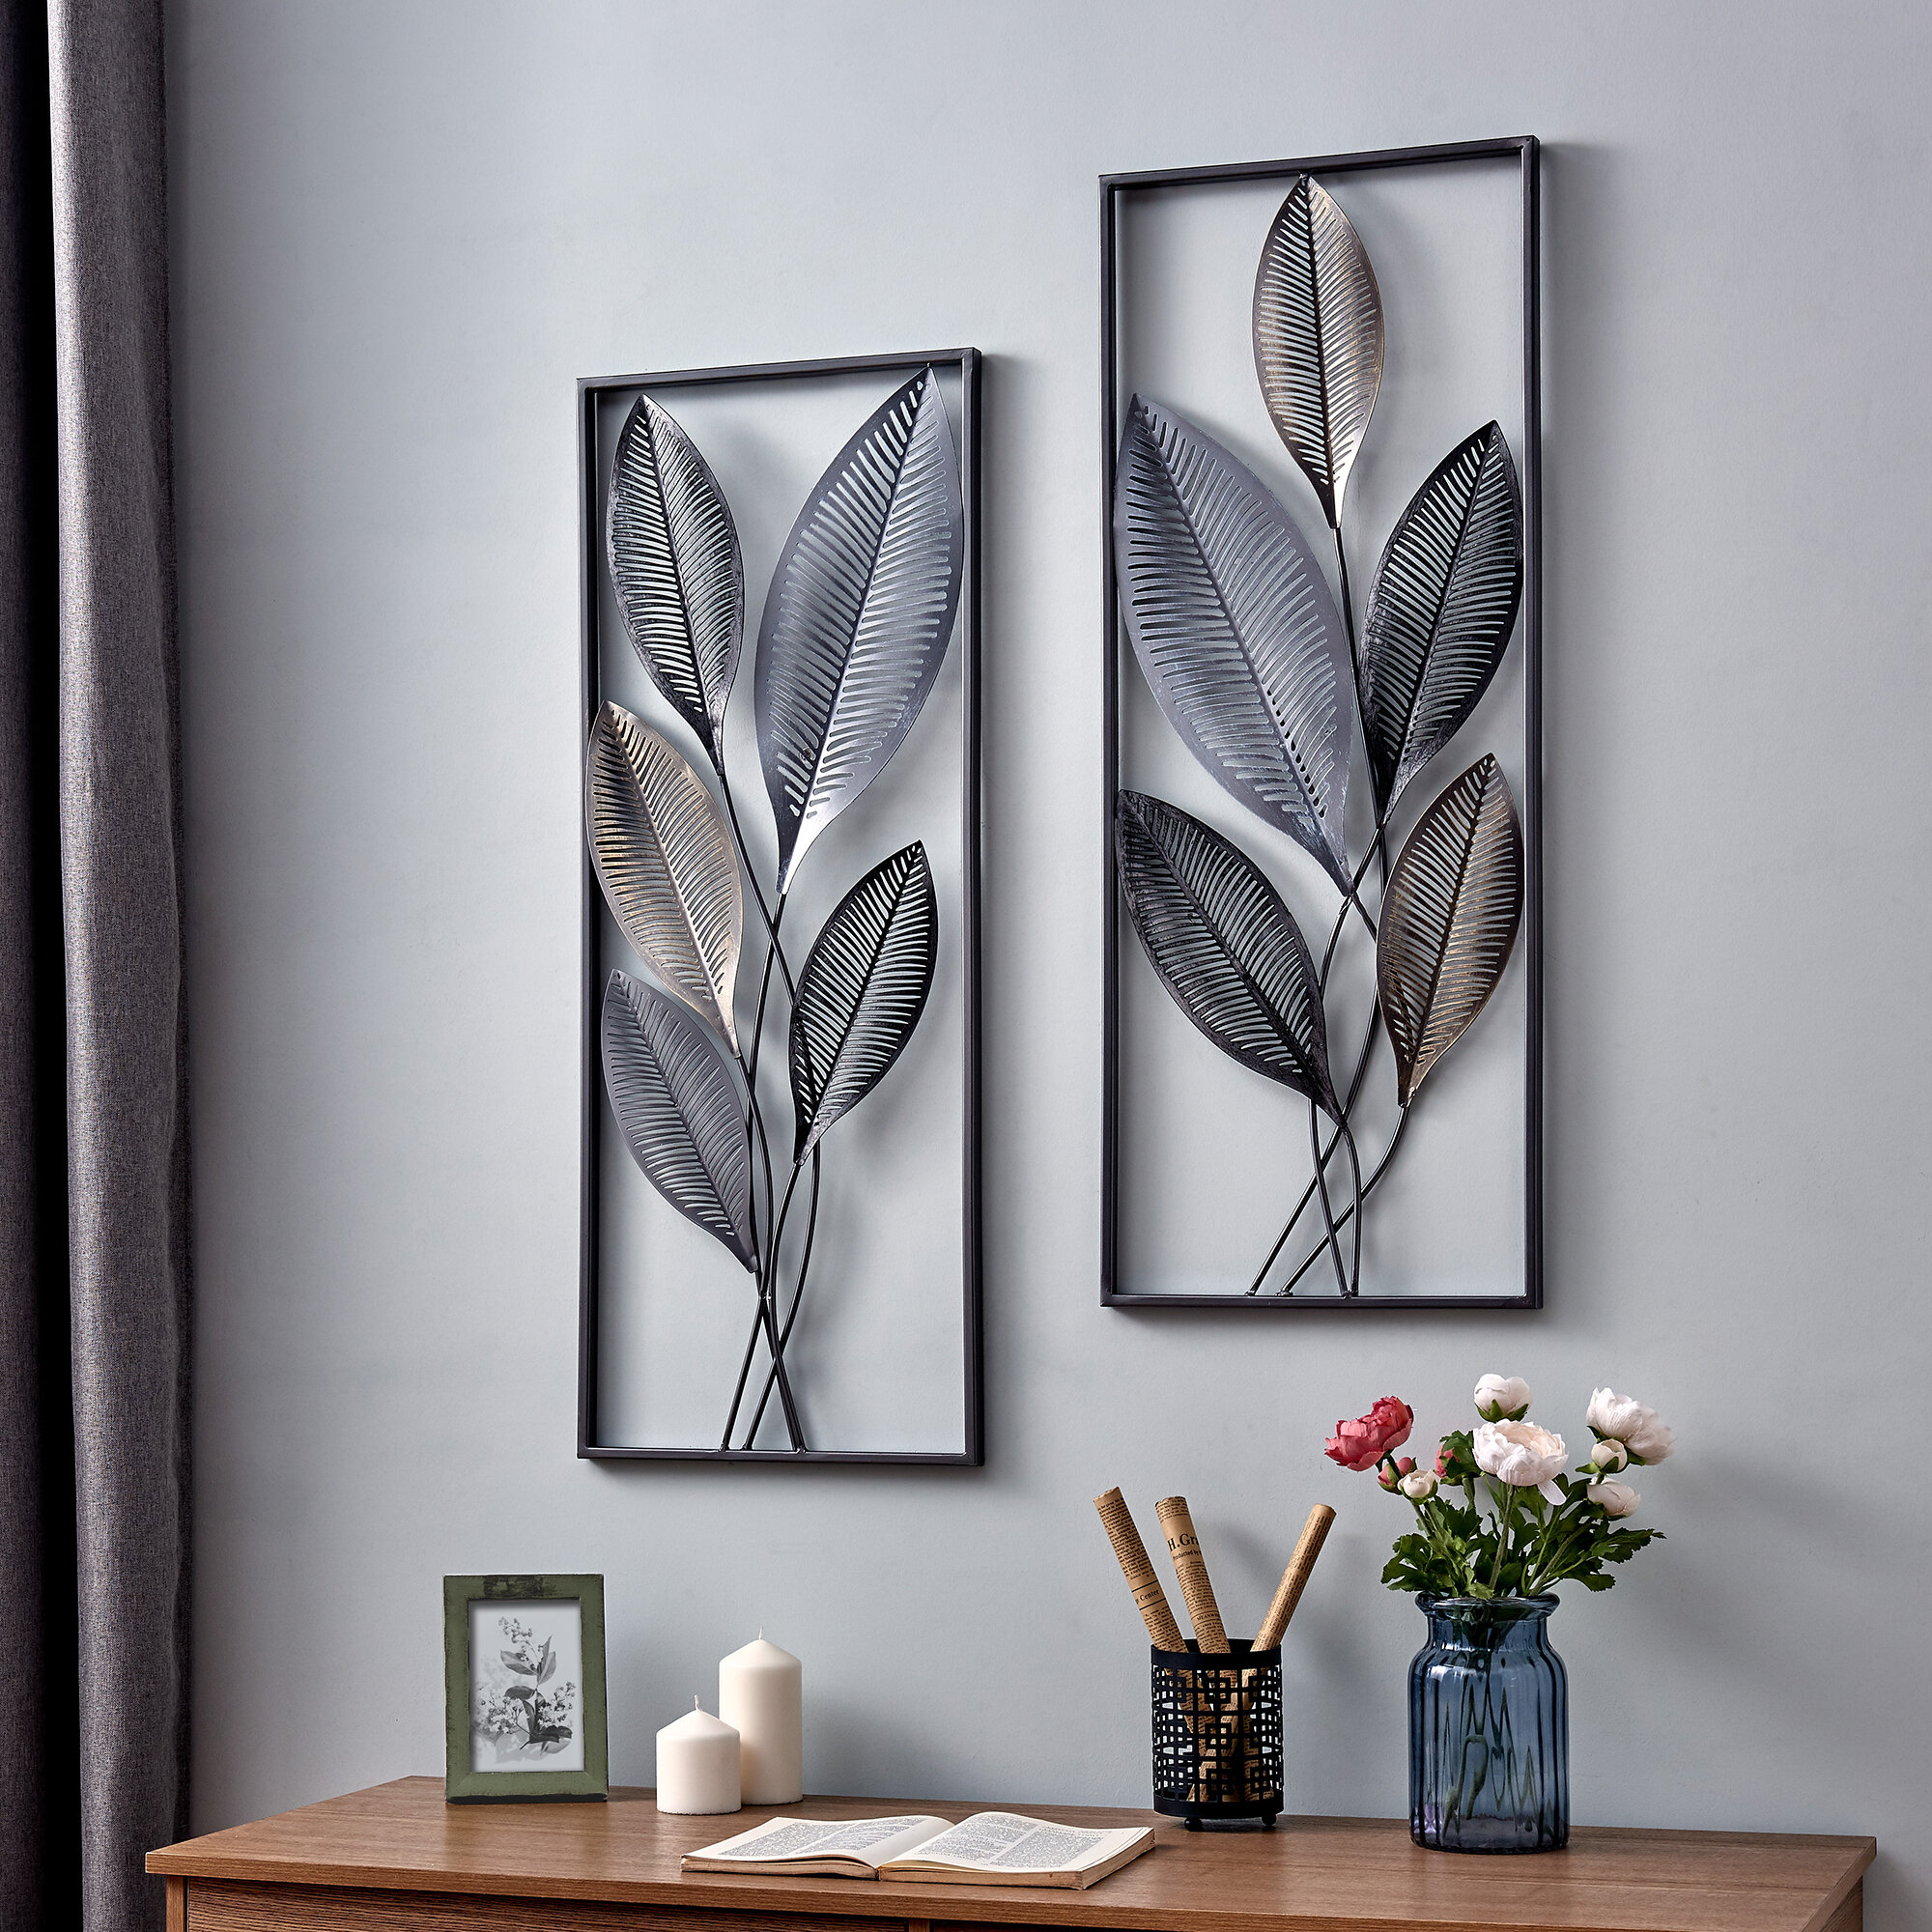 2 Piece Metallic Leaves Wall Décor Set Within Leaves Metal Sculpture Wall Decor By Winston Porter (Gallery 10 of 30)